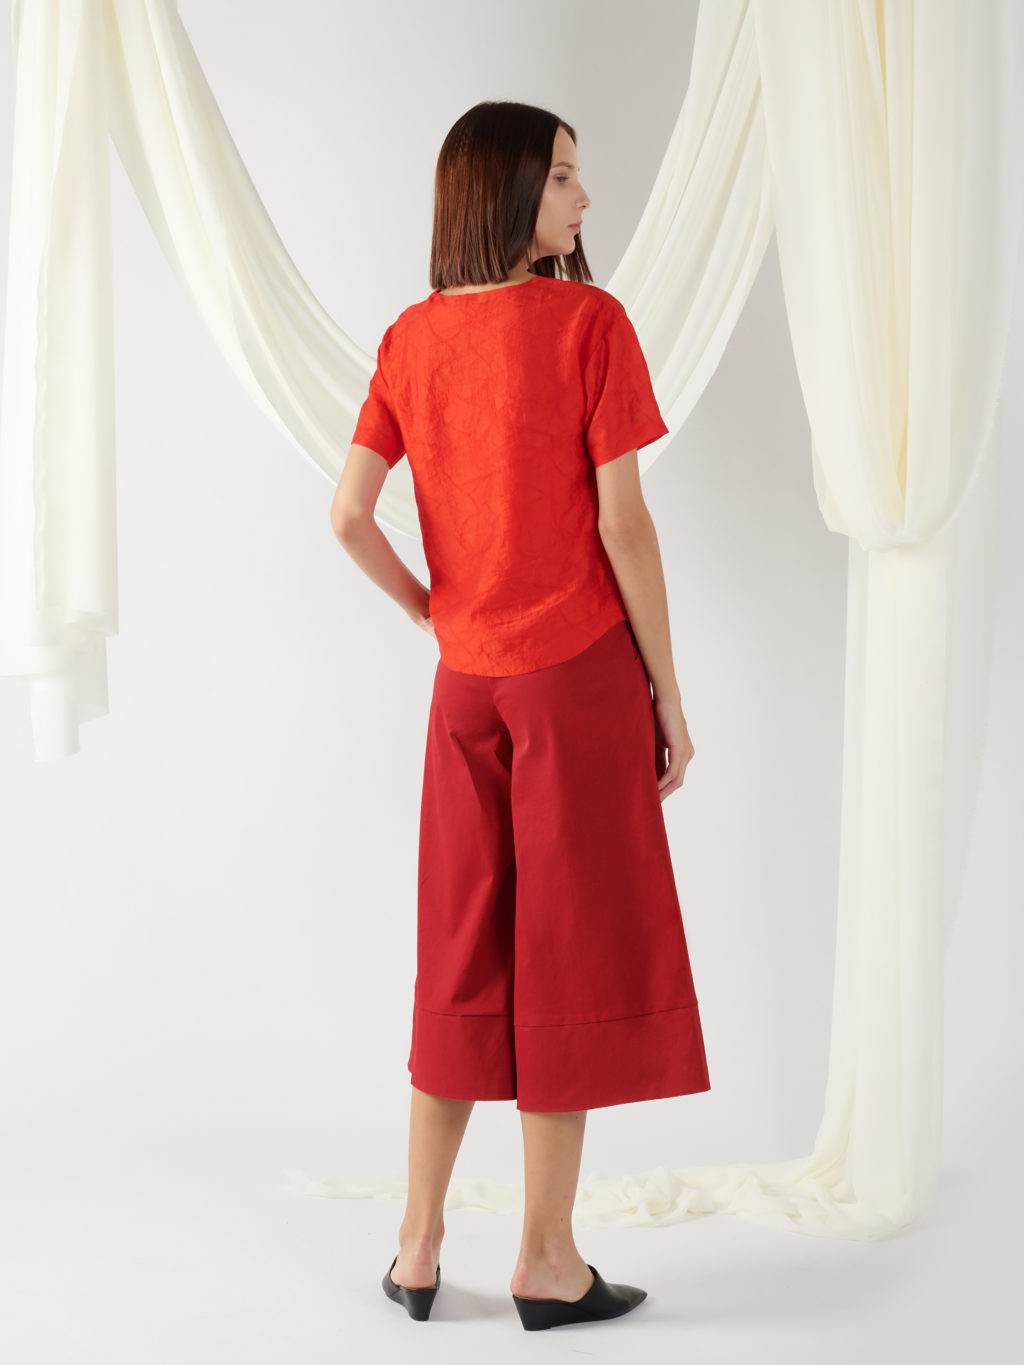 textured top with curved hem in red